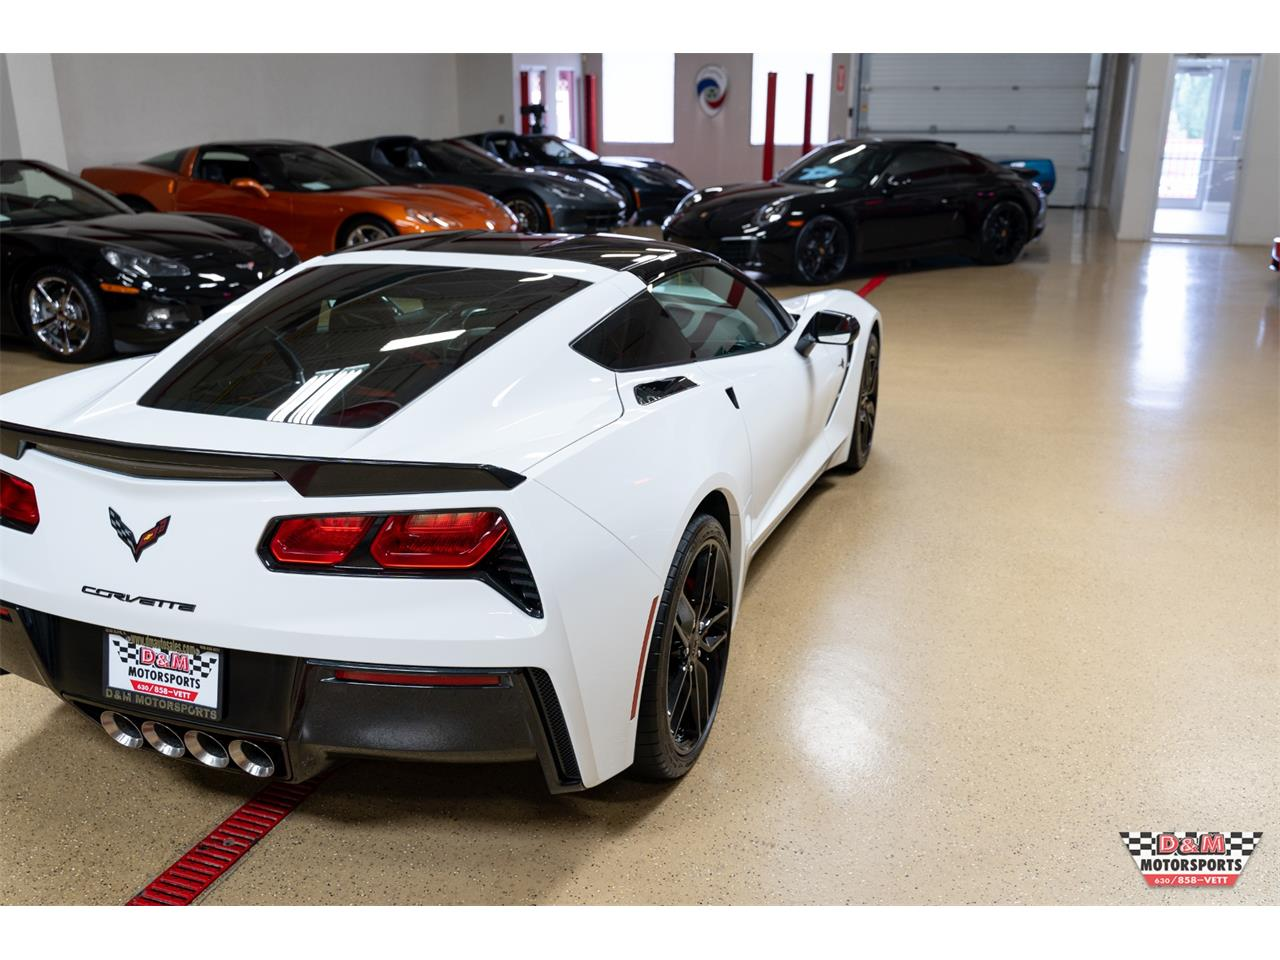 Large Picture of 2016 Corvette located in Illinois Offered by D & M Motorsports - R2HE